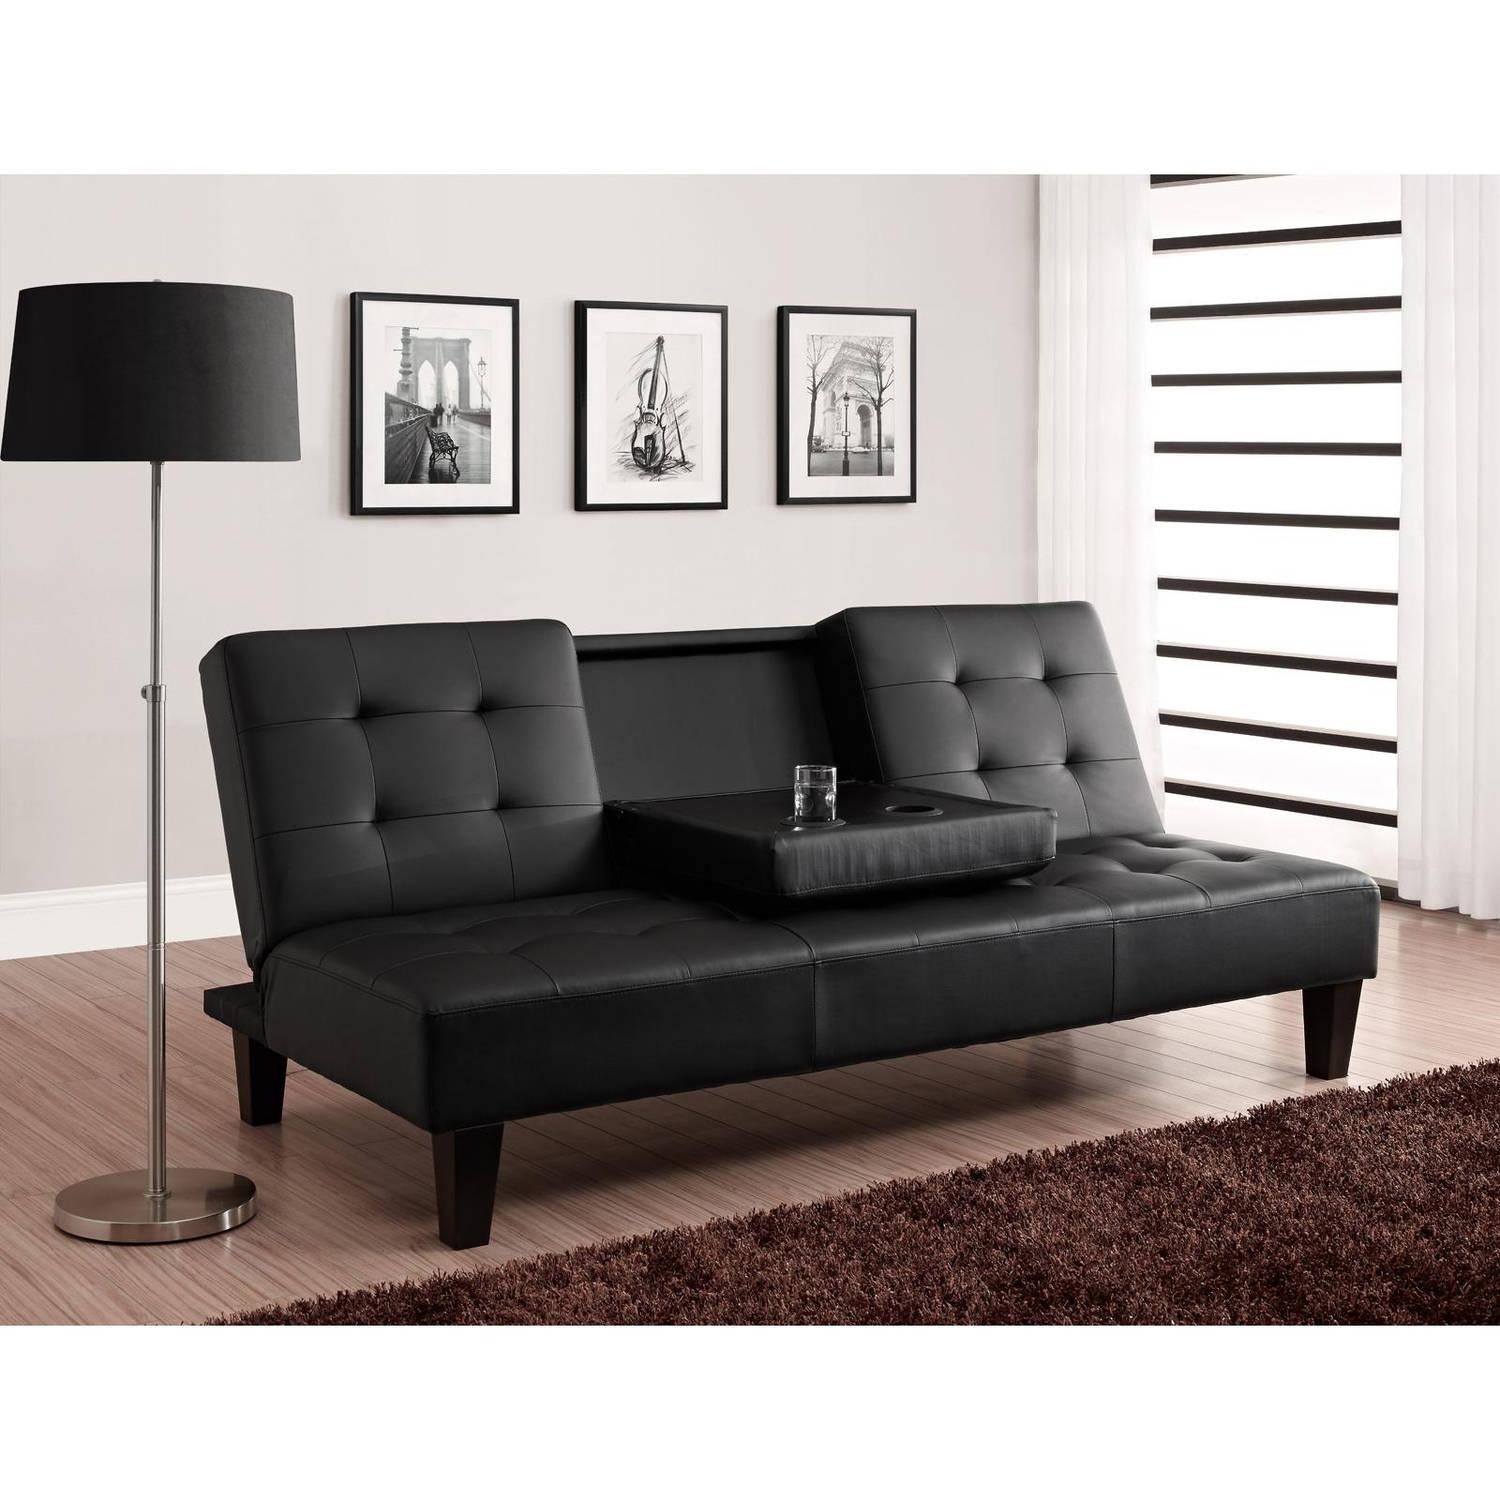 Julia Cupholder Convertible Futon, Multiple Colors – Walmart For Futon Couch Beds (Image 16 of 20)